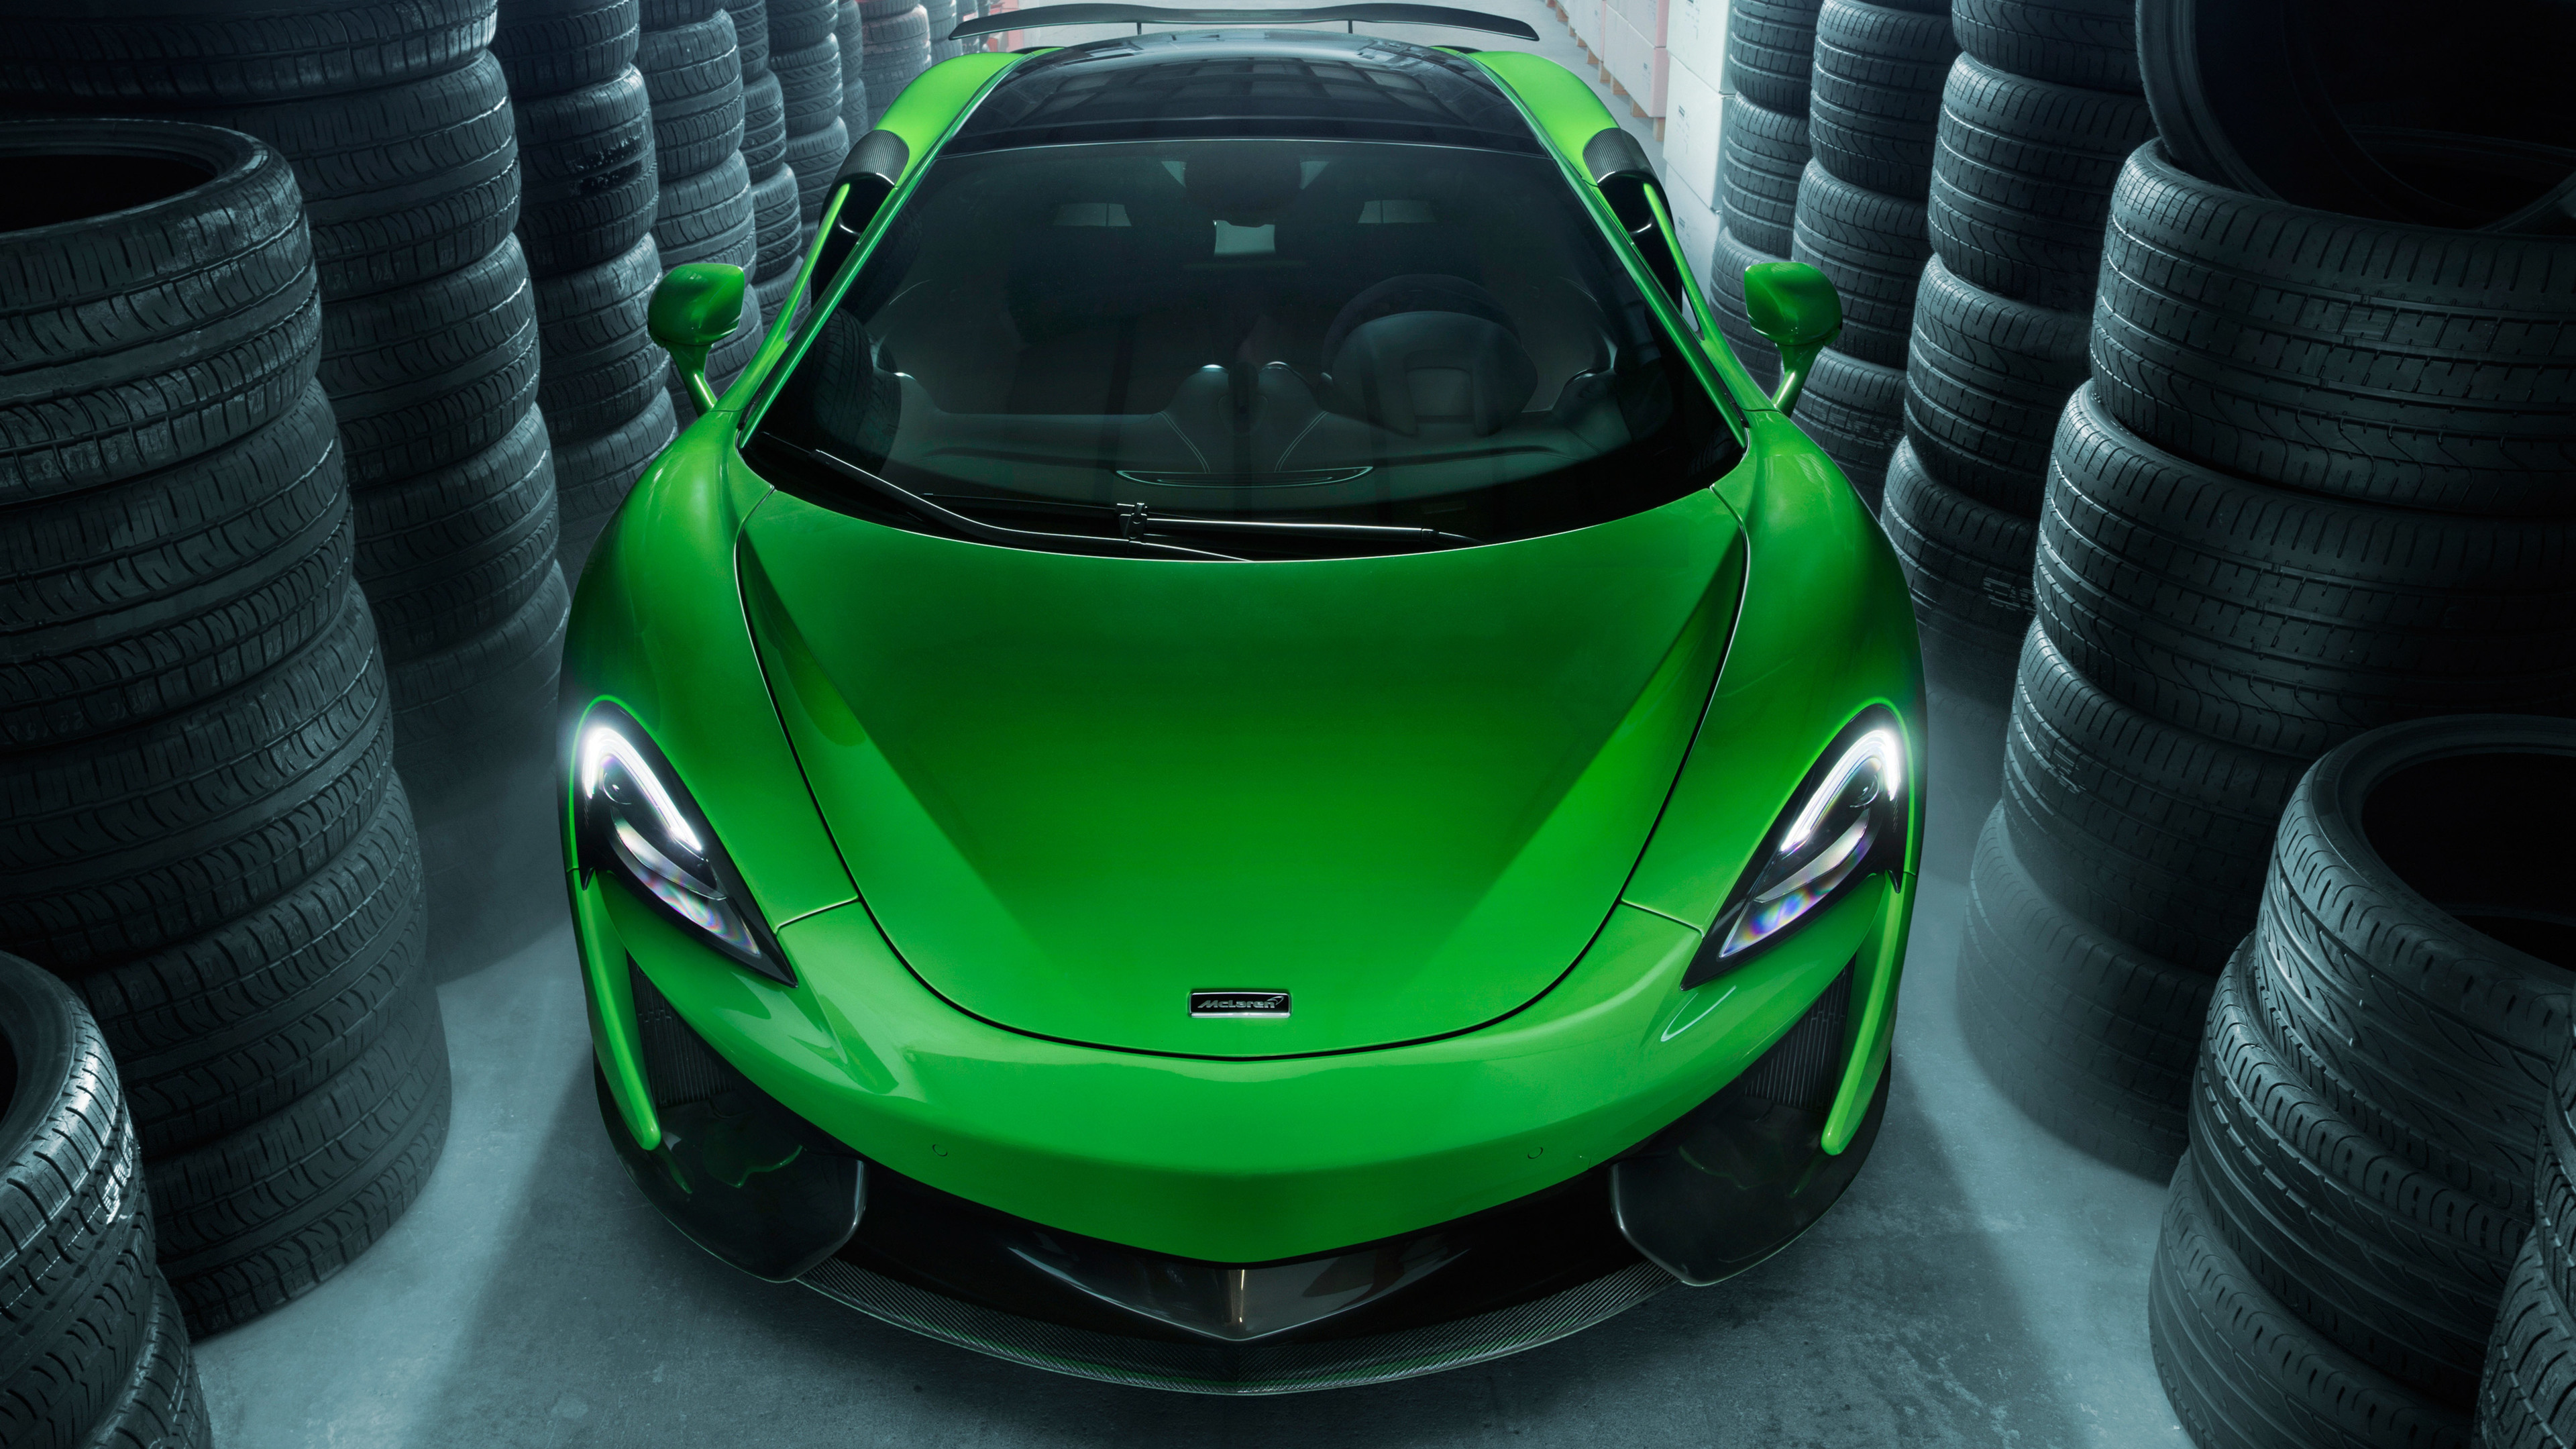 novitec mclaren 570gt 1539106009 - Novitec McLaren 570GT - mclaren wallpapers, mclaren 570gt wallpapers, hd-wallpapers, cars wallpapers, 4k-wallpapers, 2017 cars wallpapers